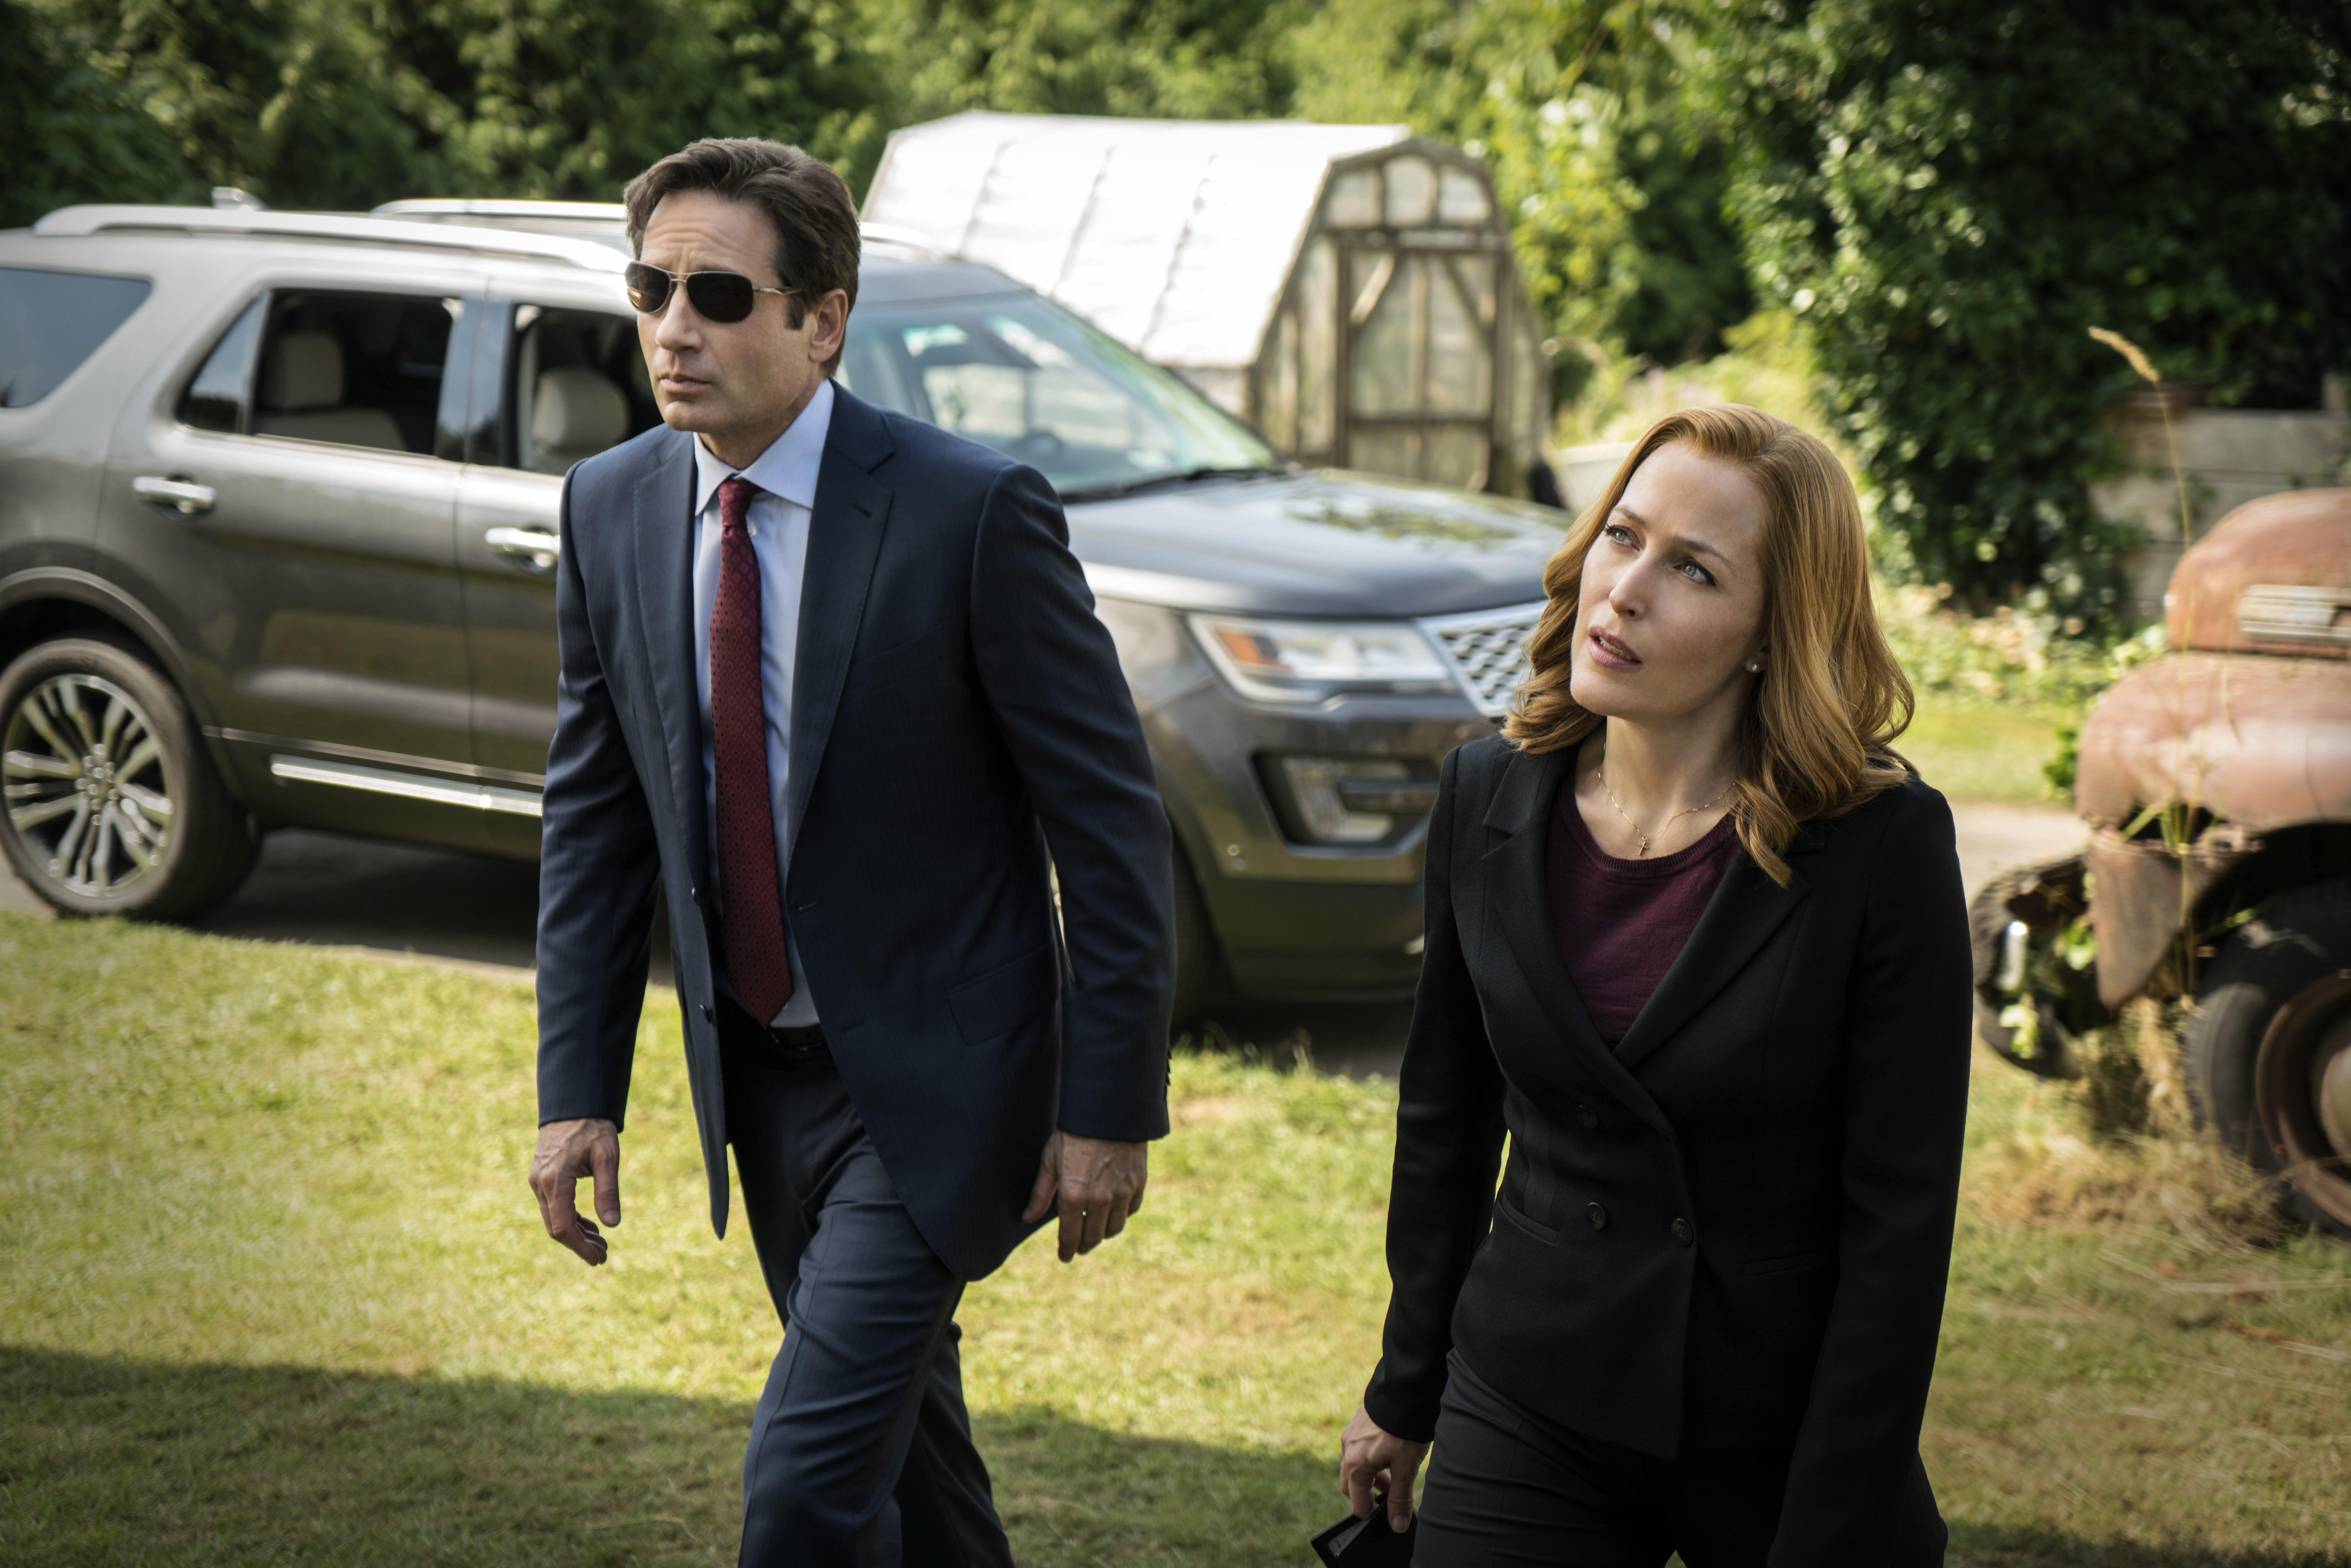 Fox Mulder and Dana Scully